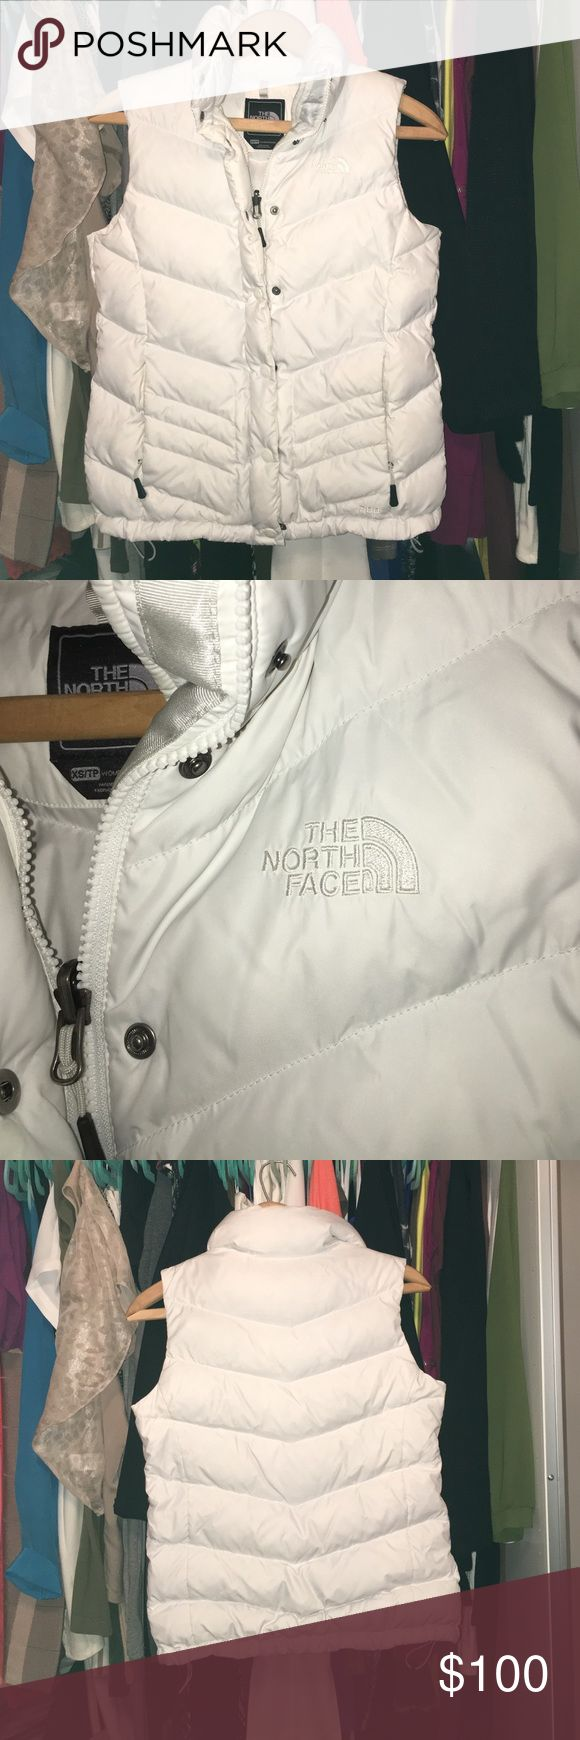 North face vest used a couple of times! Super cute sporty white north face vest! The North Face Jackets & Coats Vests